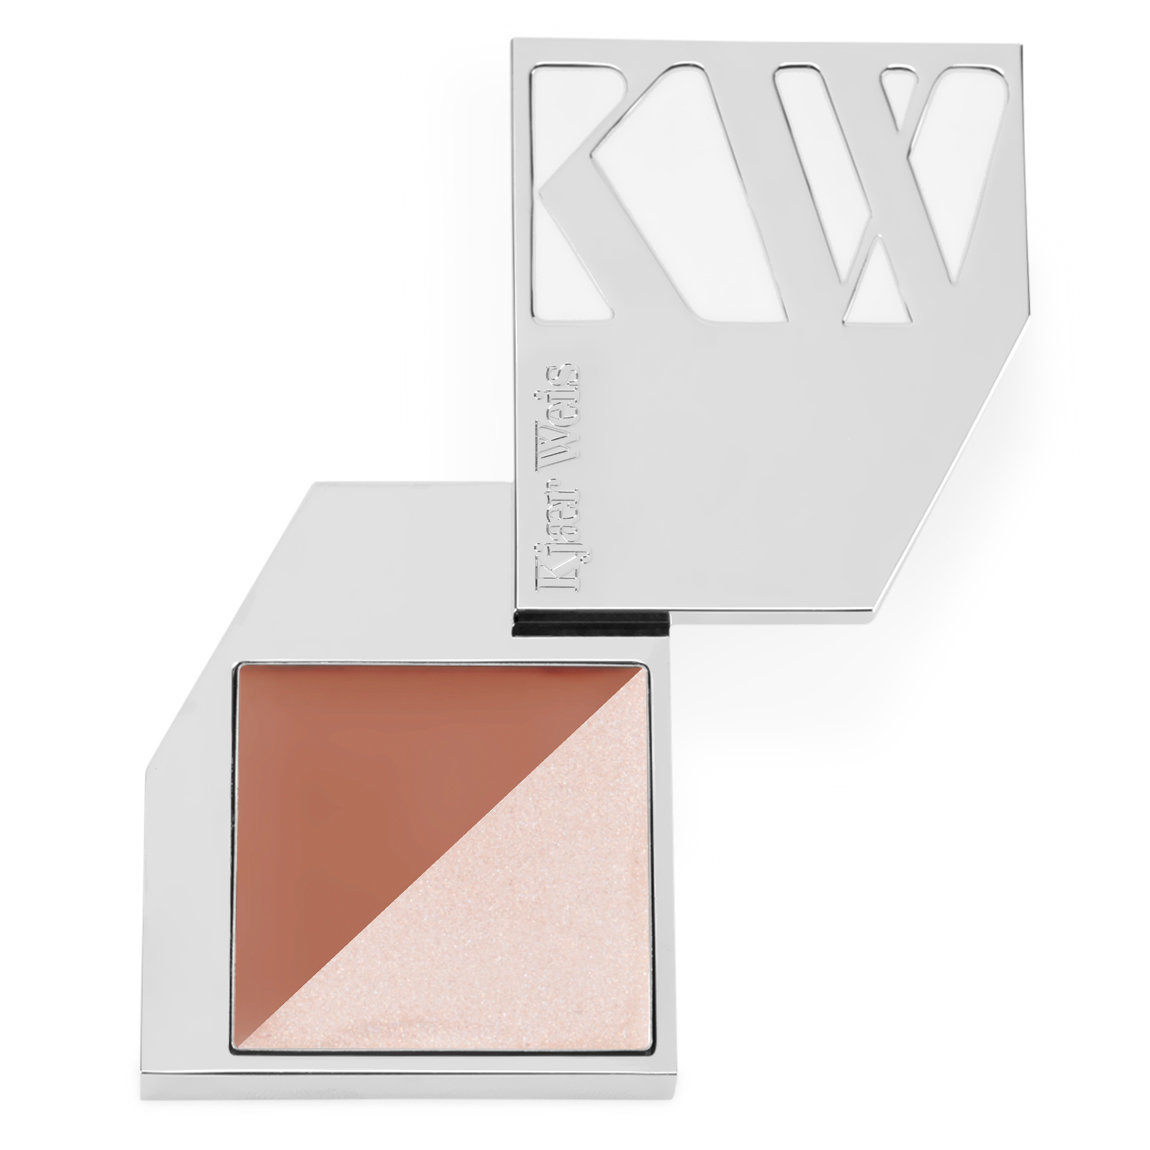 Kjaer Weis Flush & Glow Inner Light product swatch.